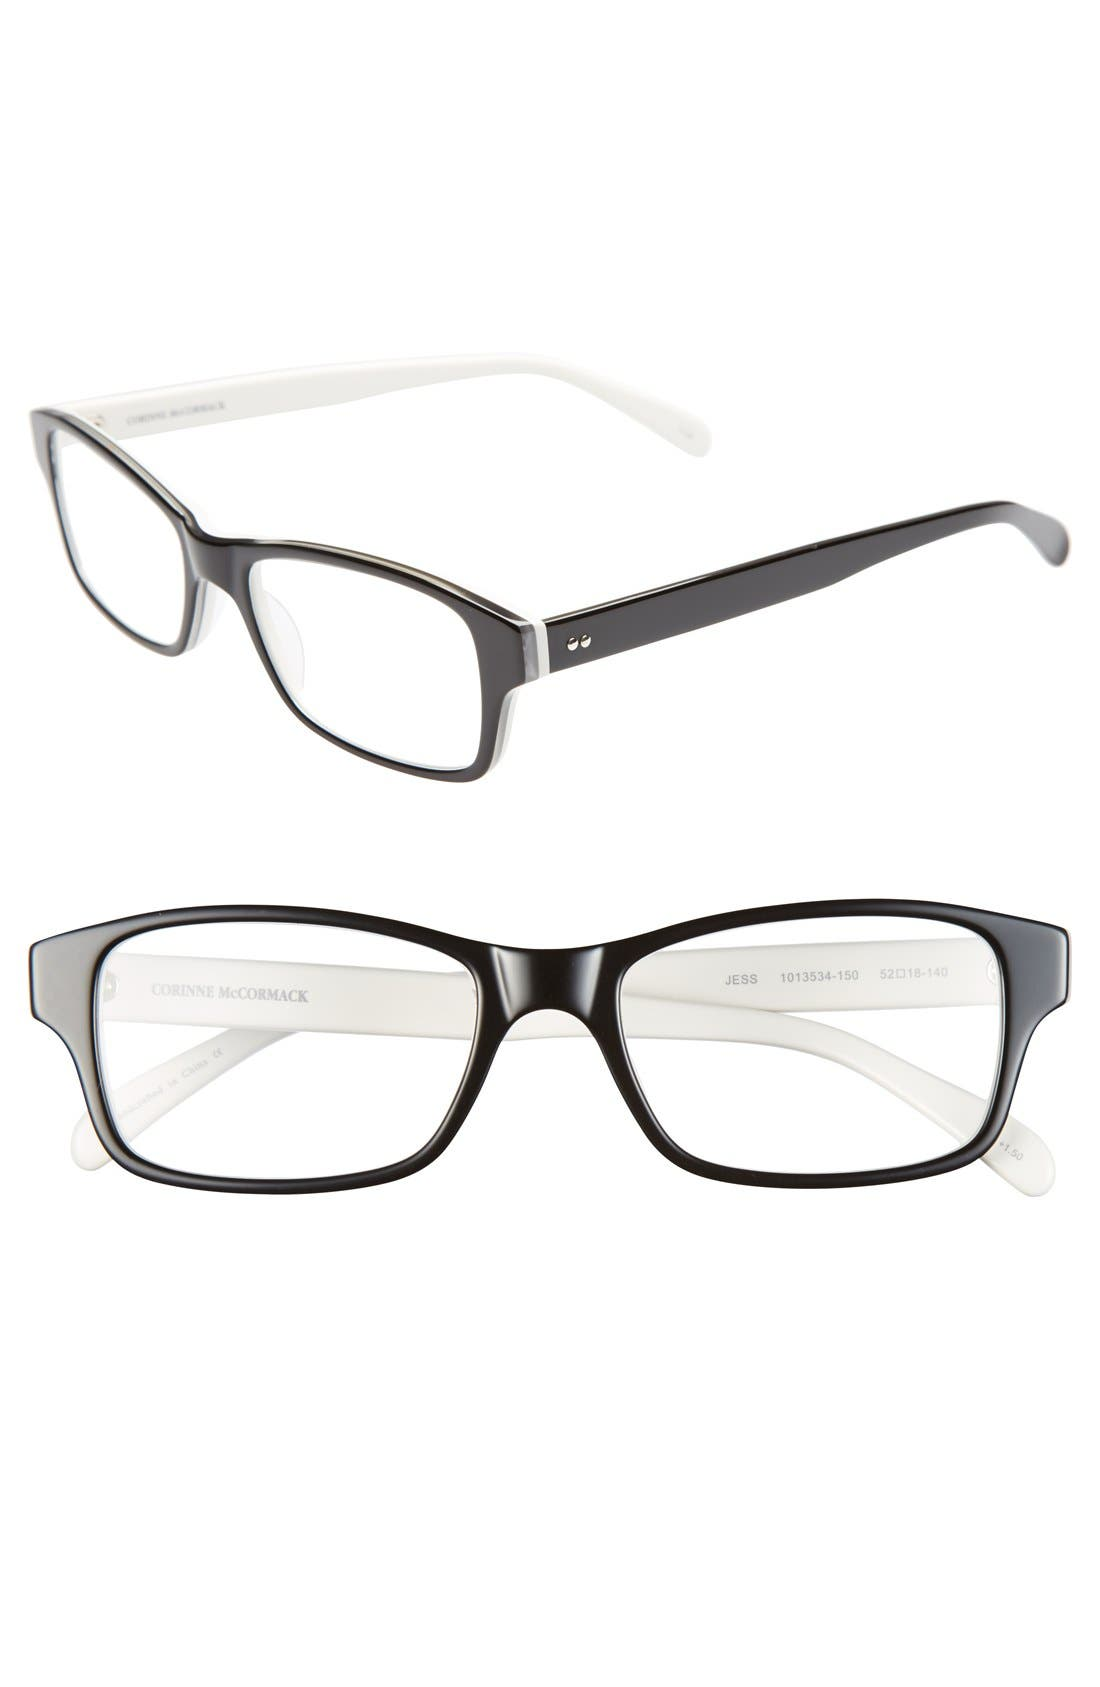 'Jess' 52mm Reading Glasses,                             Main thumbnail 1, color,                             BLACK/ WHITE